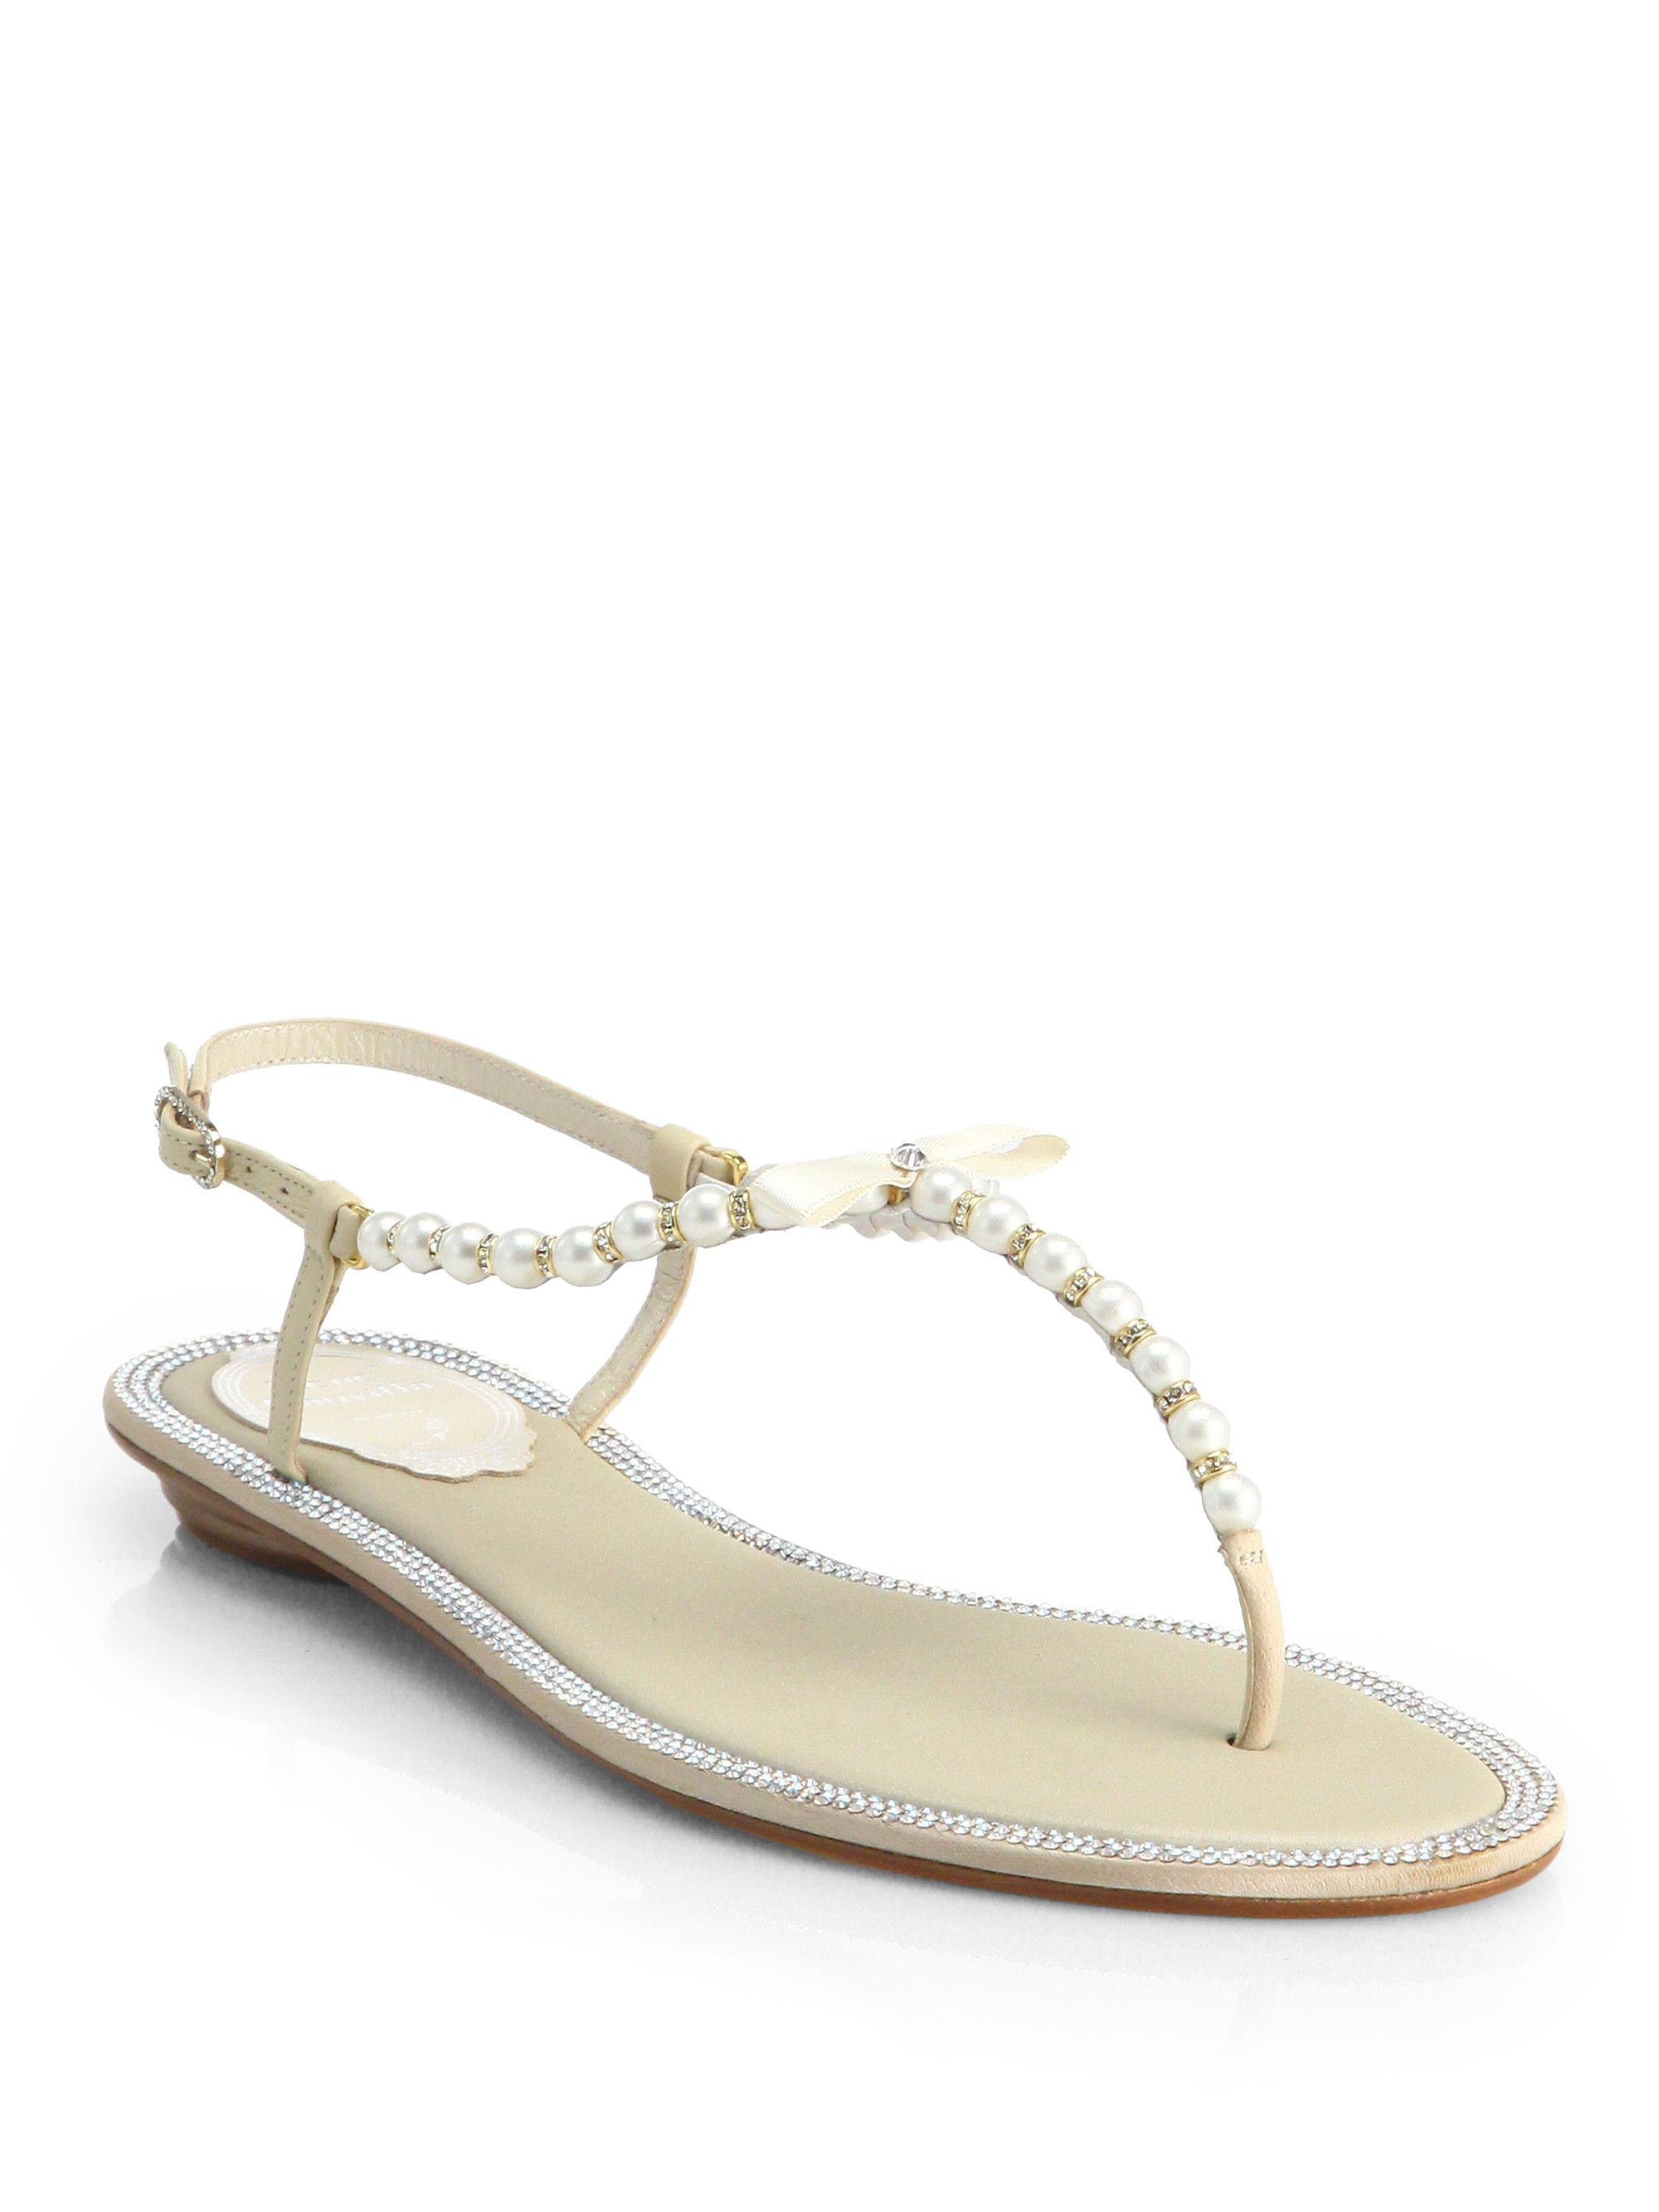 99f20497030a Lyst - Rene Caovilla Crystal   Faux Pearl Leather Sandals in Natural